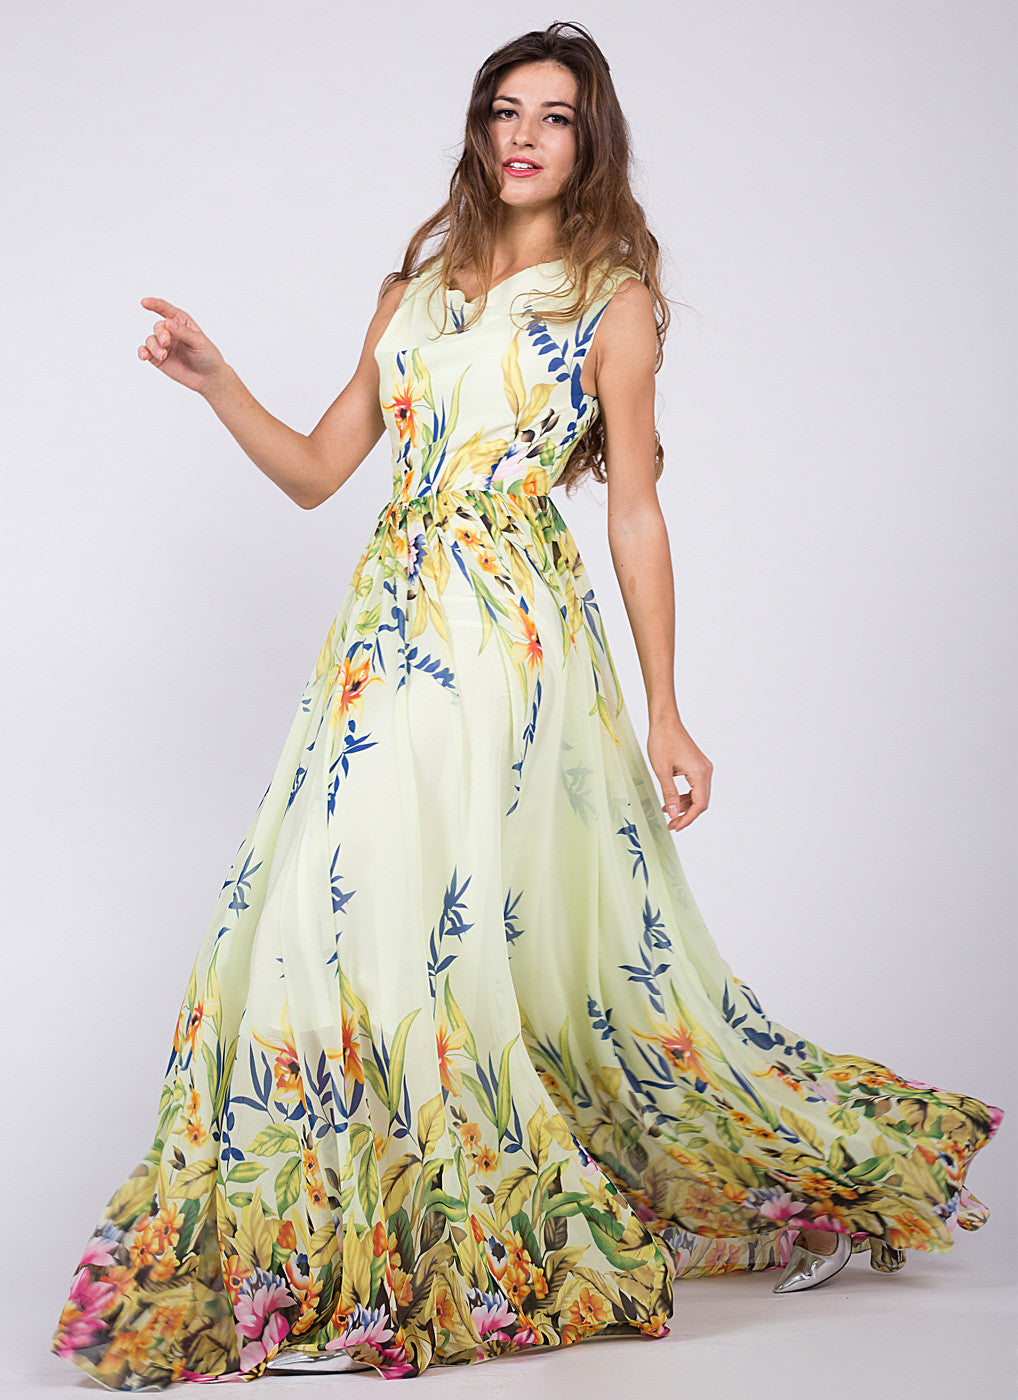 Yellow Pale sundress catalog photo